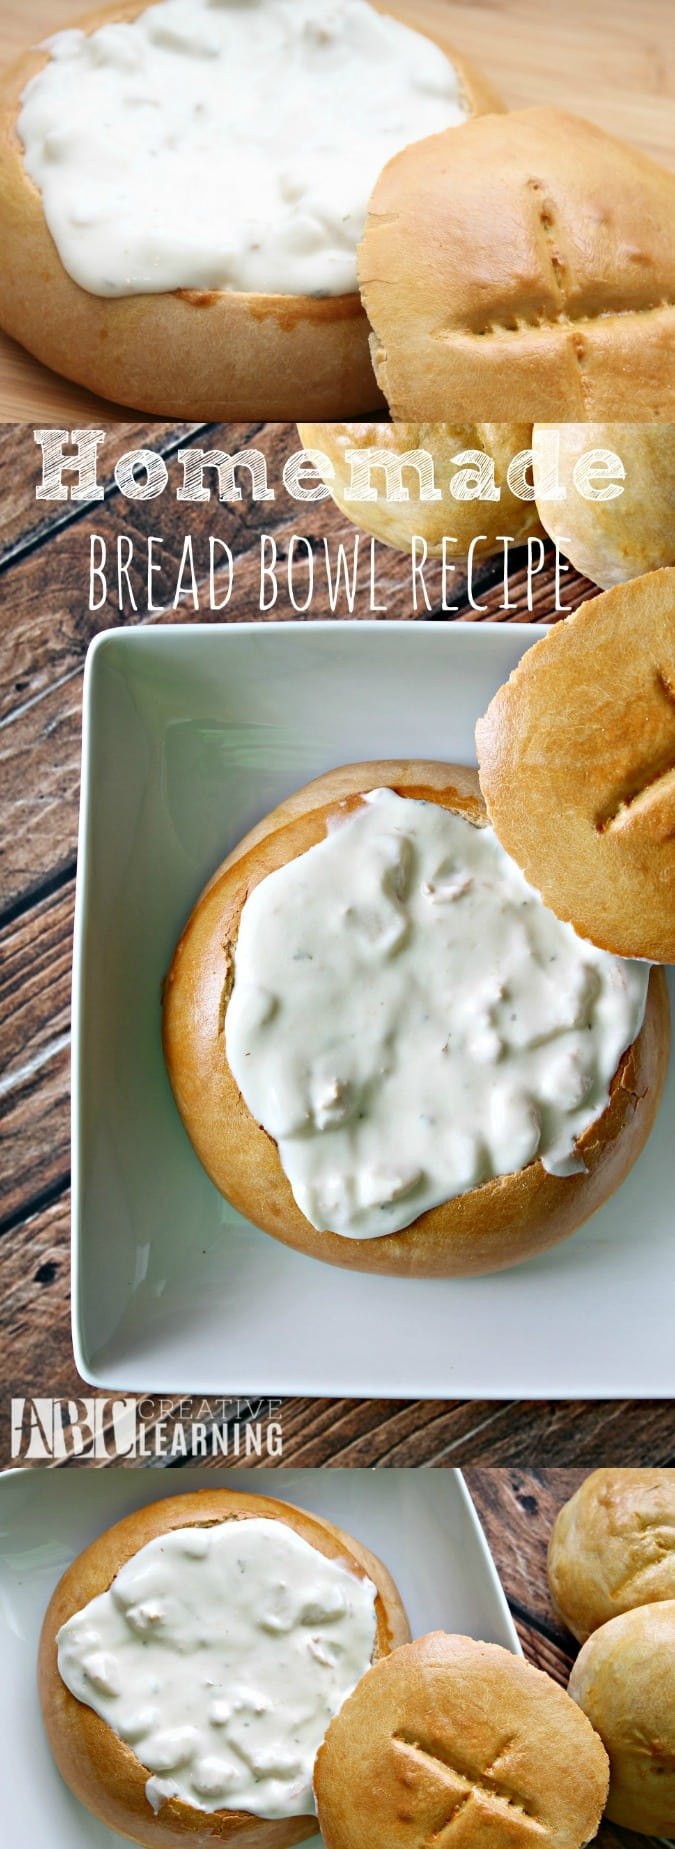 Homemade Bread Bowl Recipe for Fall Soups - simplytodaylife.com